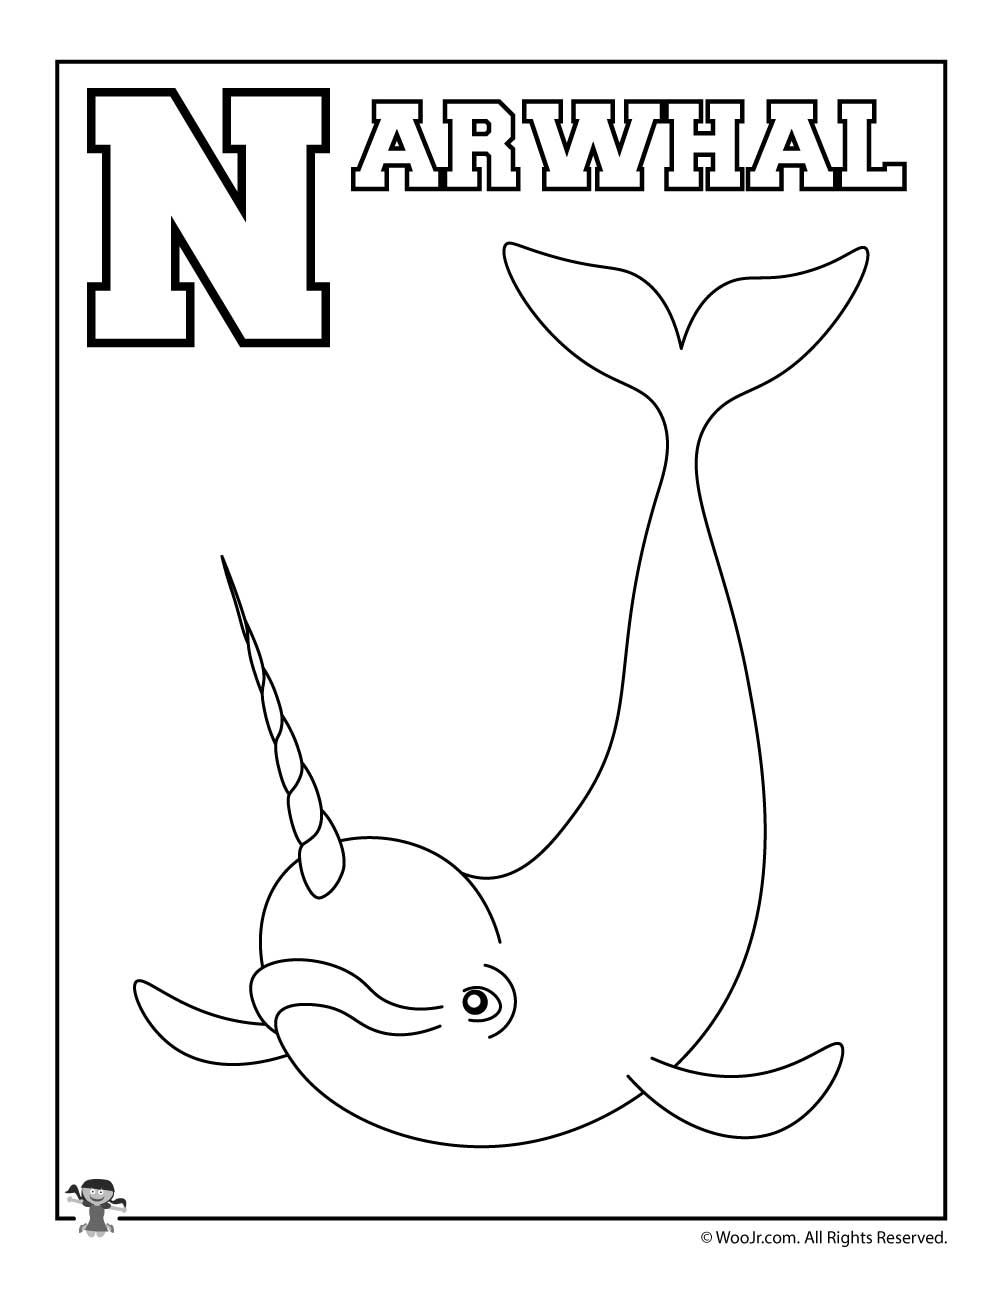 Alphabet Coloring Pages Set A Z Woo Jr Kids Activities Alphabet Coloring Pages Preschool Coloring Pages Narwhal